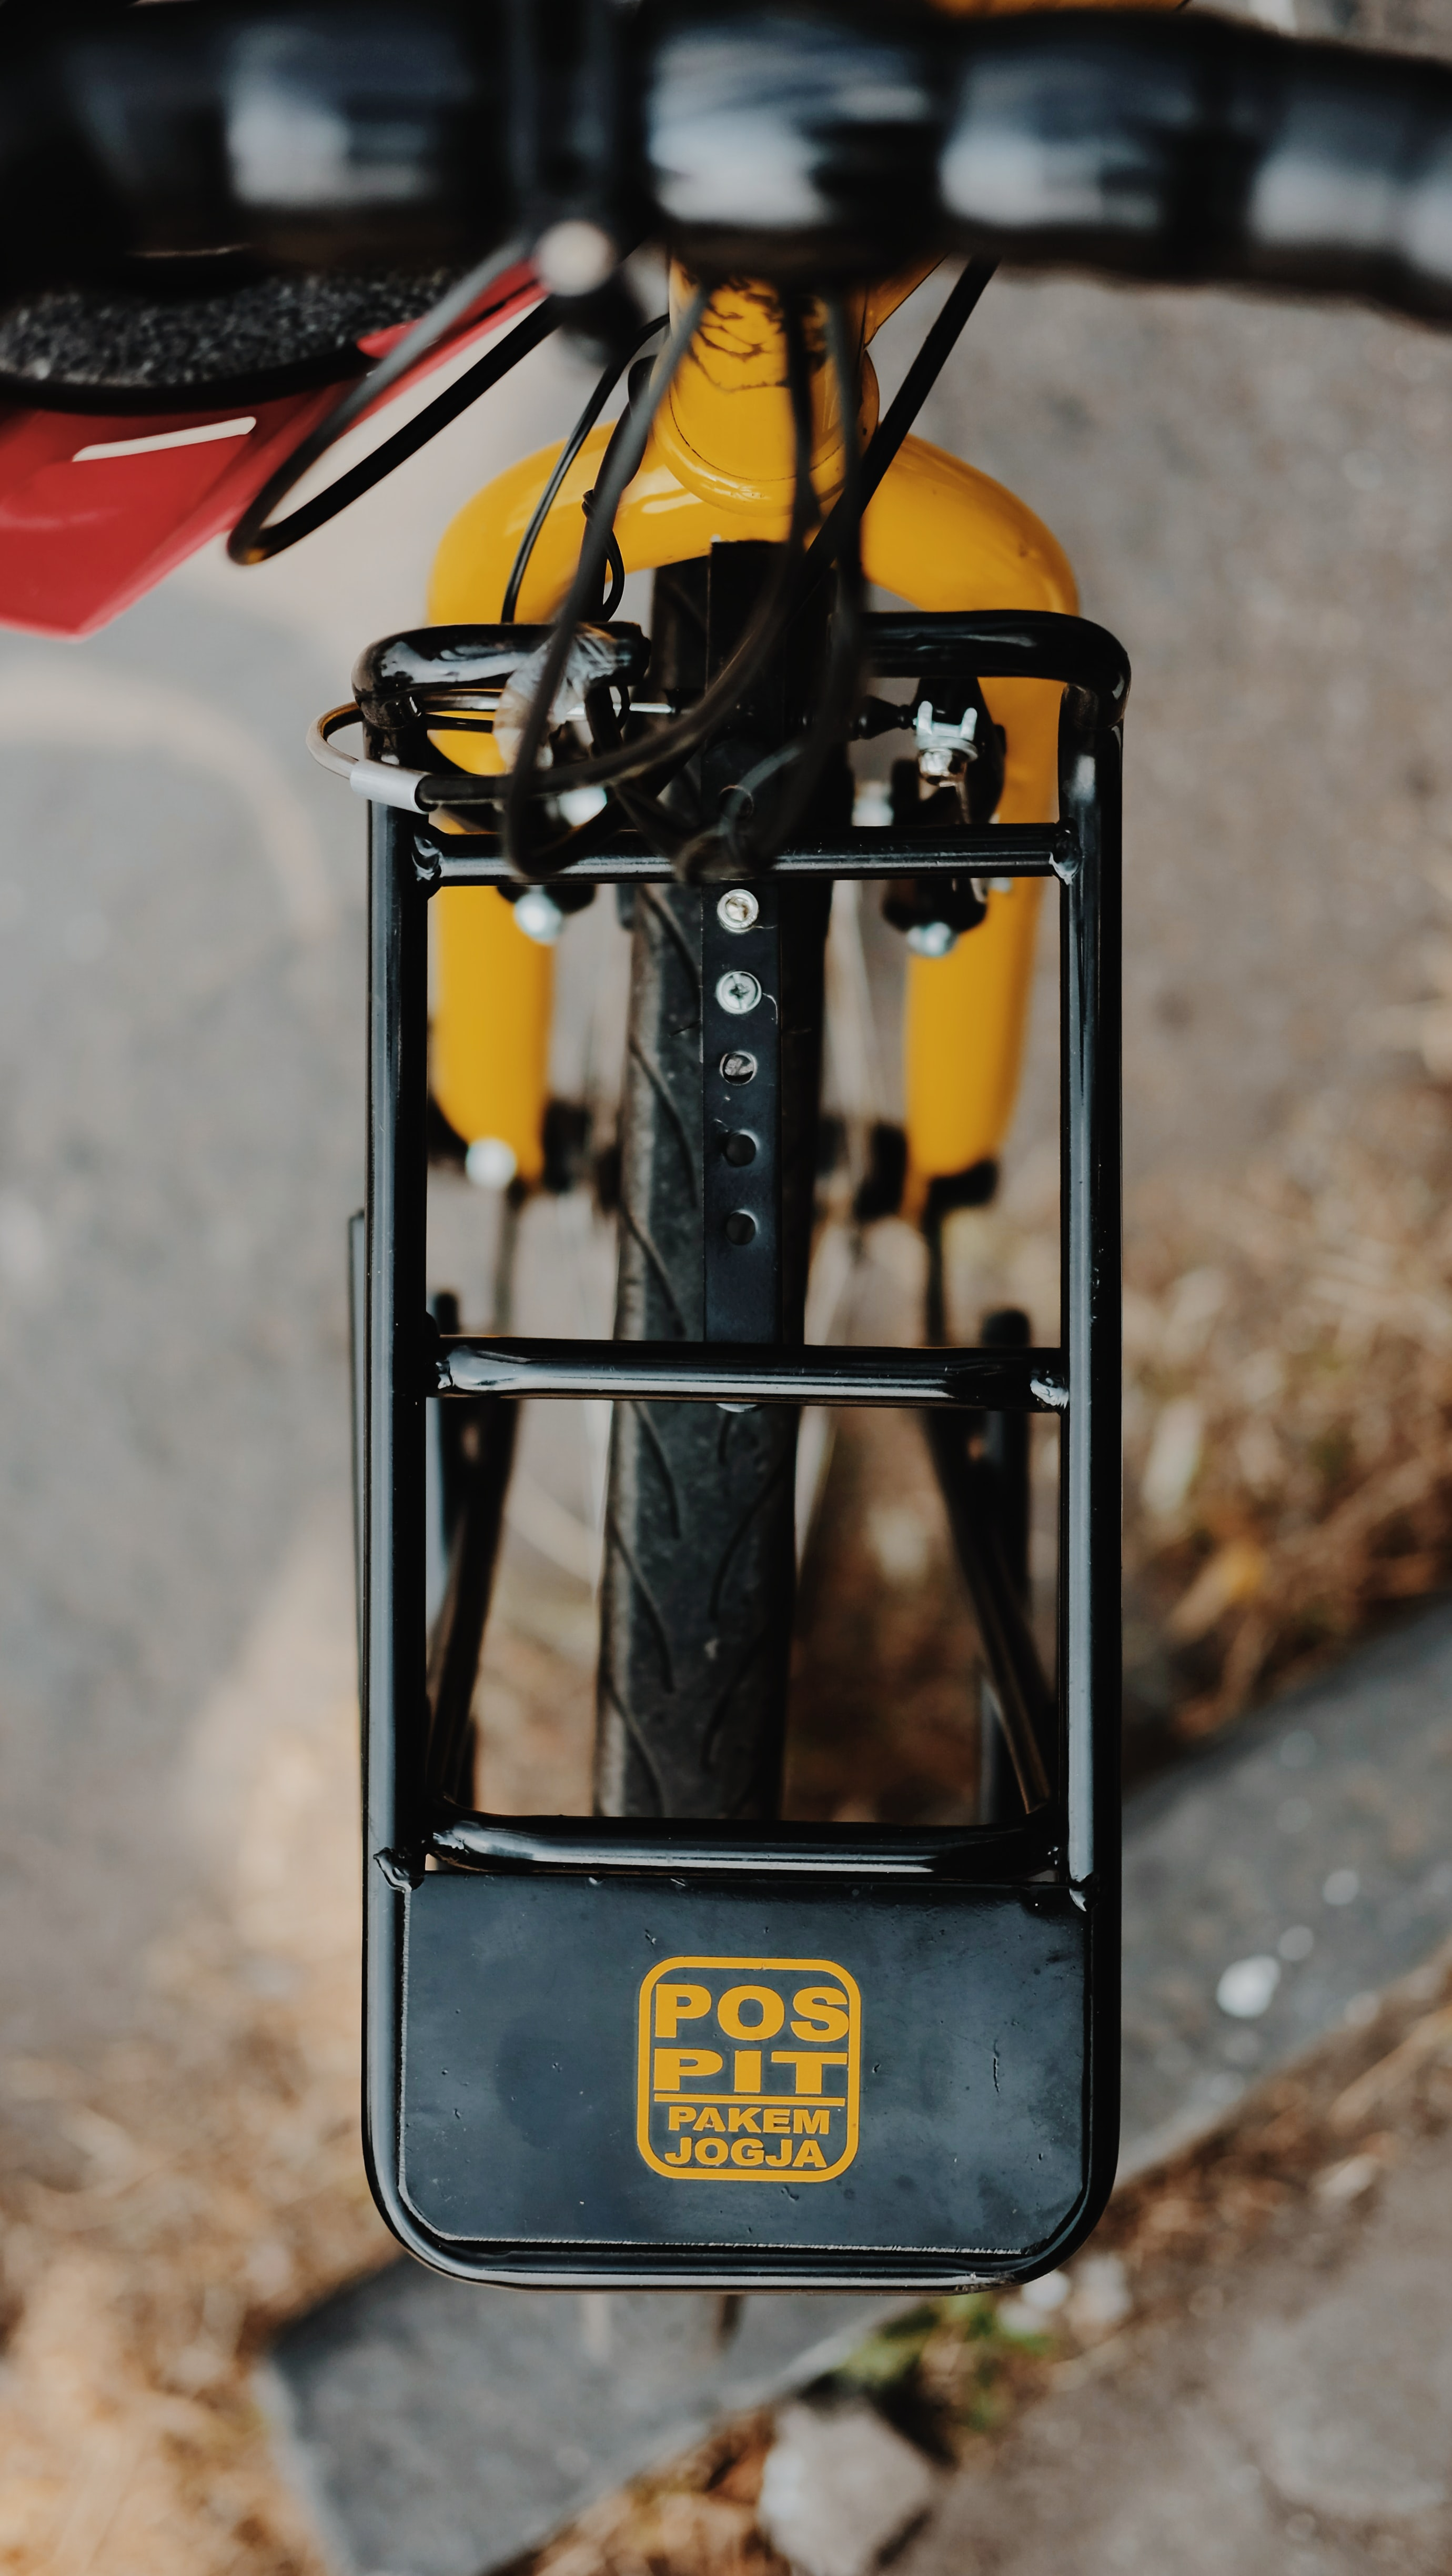 yellow and black Pos Pit bicycle part